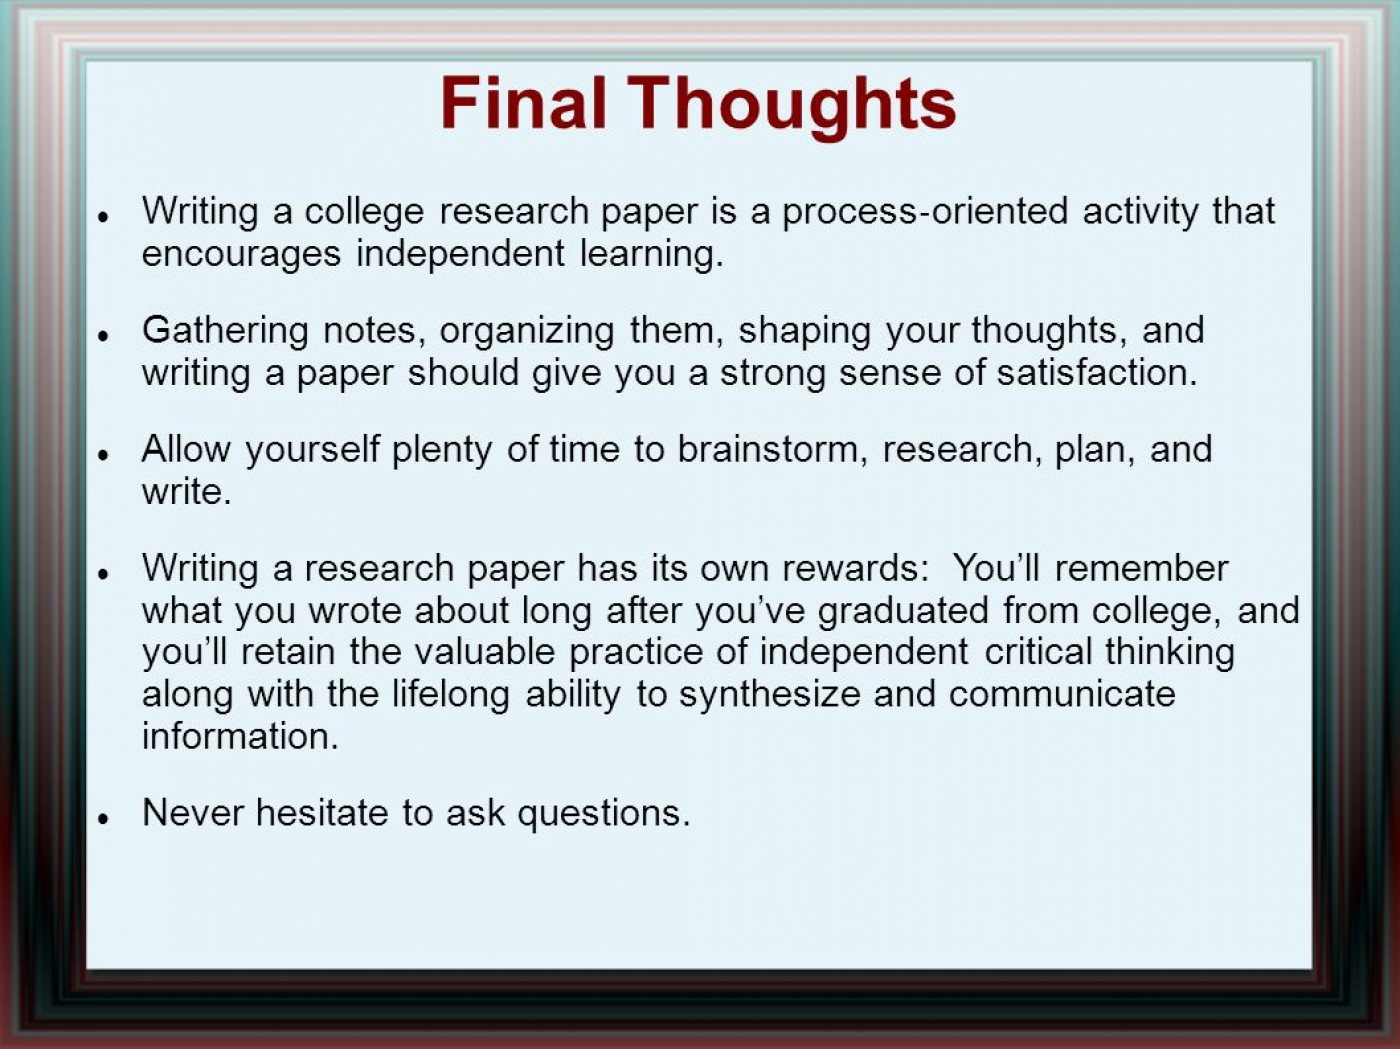 014 Research Paper Writing Process Ppt How Outstanding To Publish Write Abstract For Prepare 1400